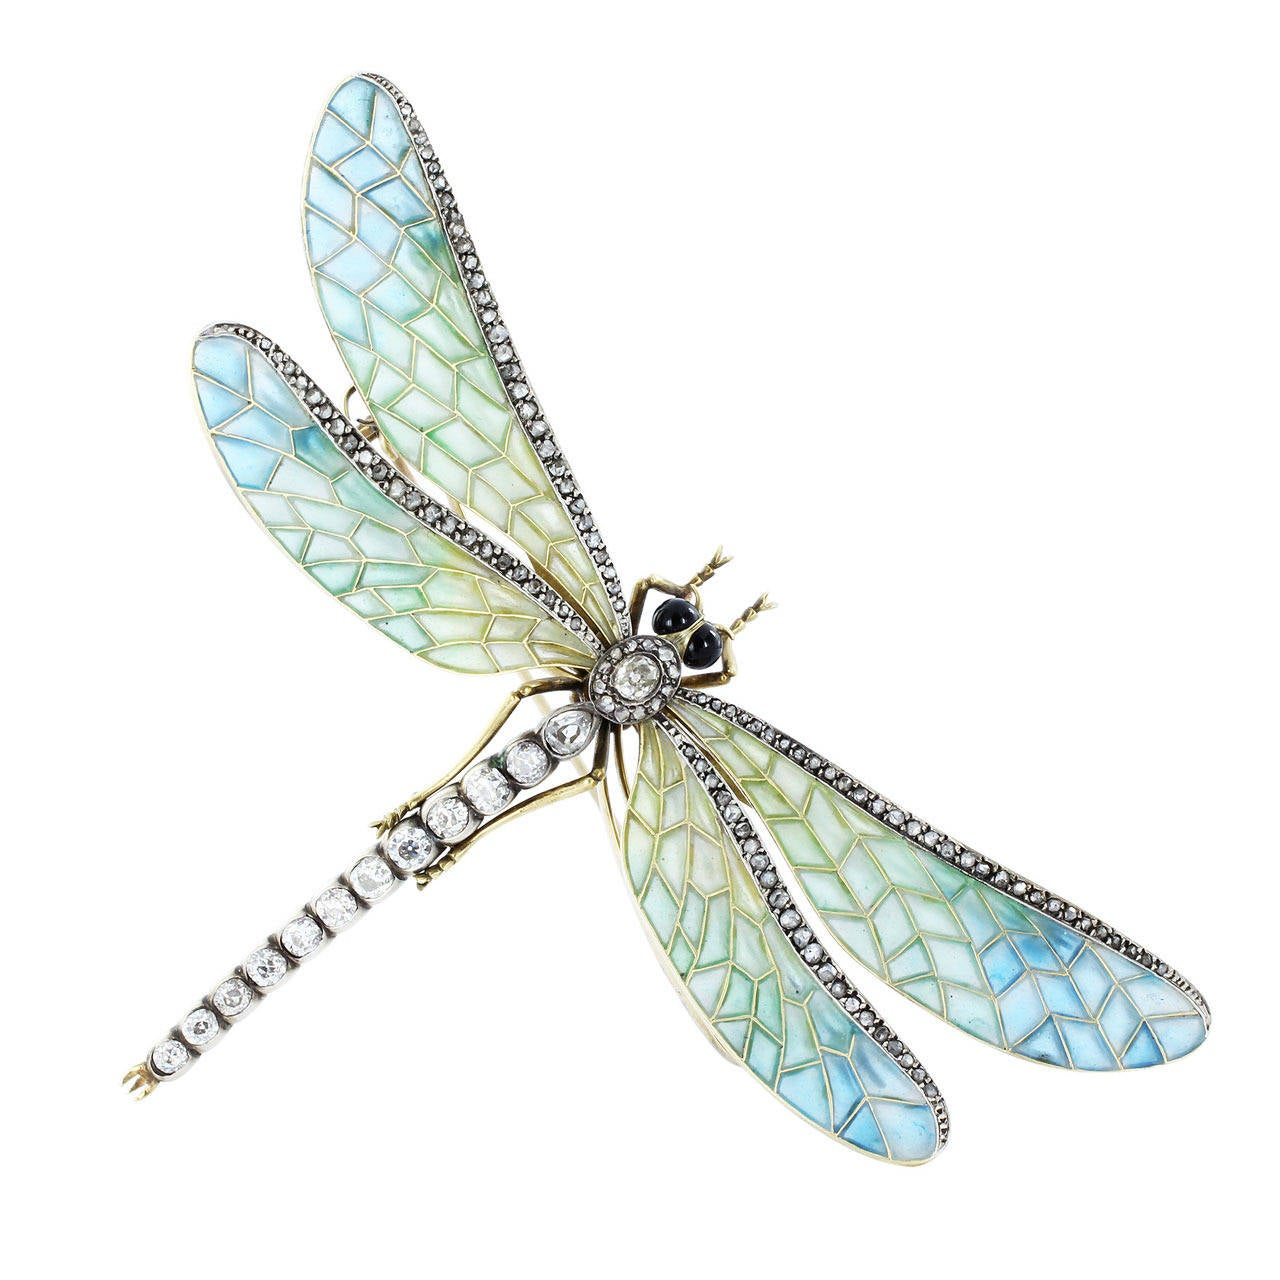 Antique Plique-a-Jour Dragonfly Pin